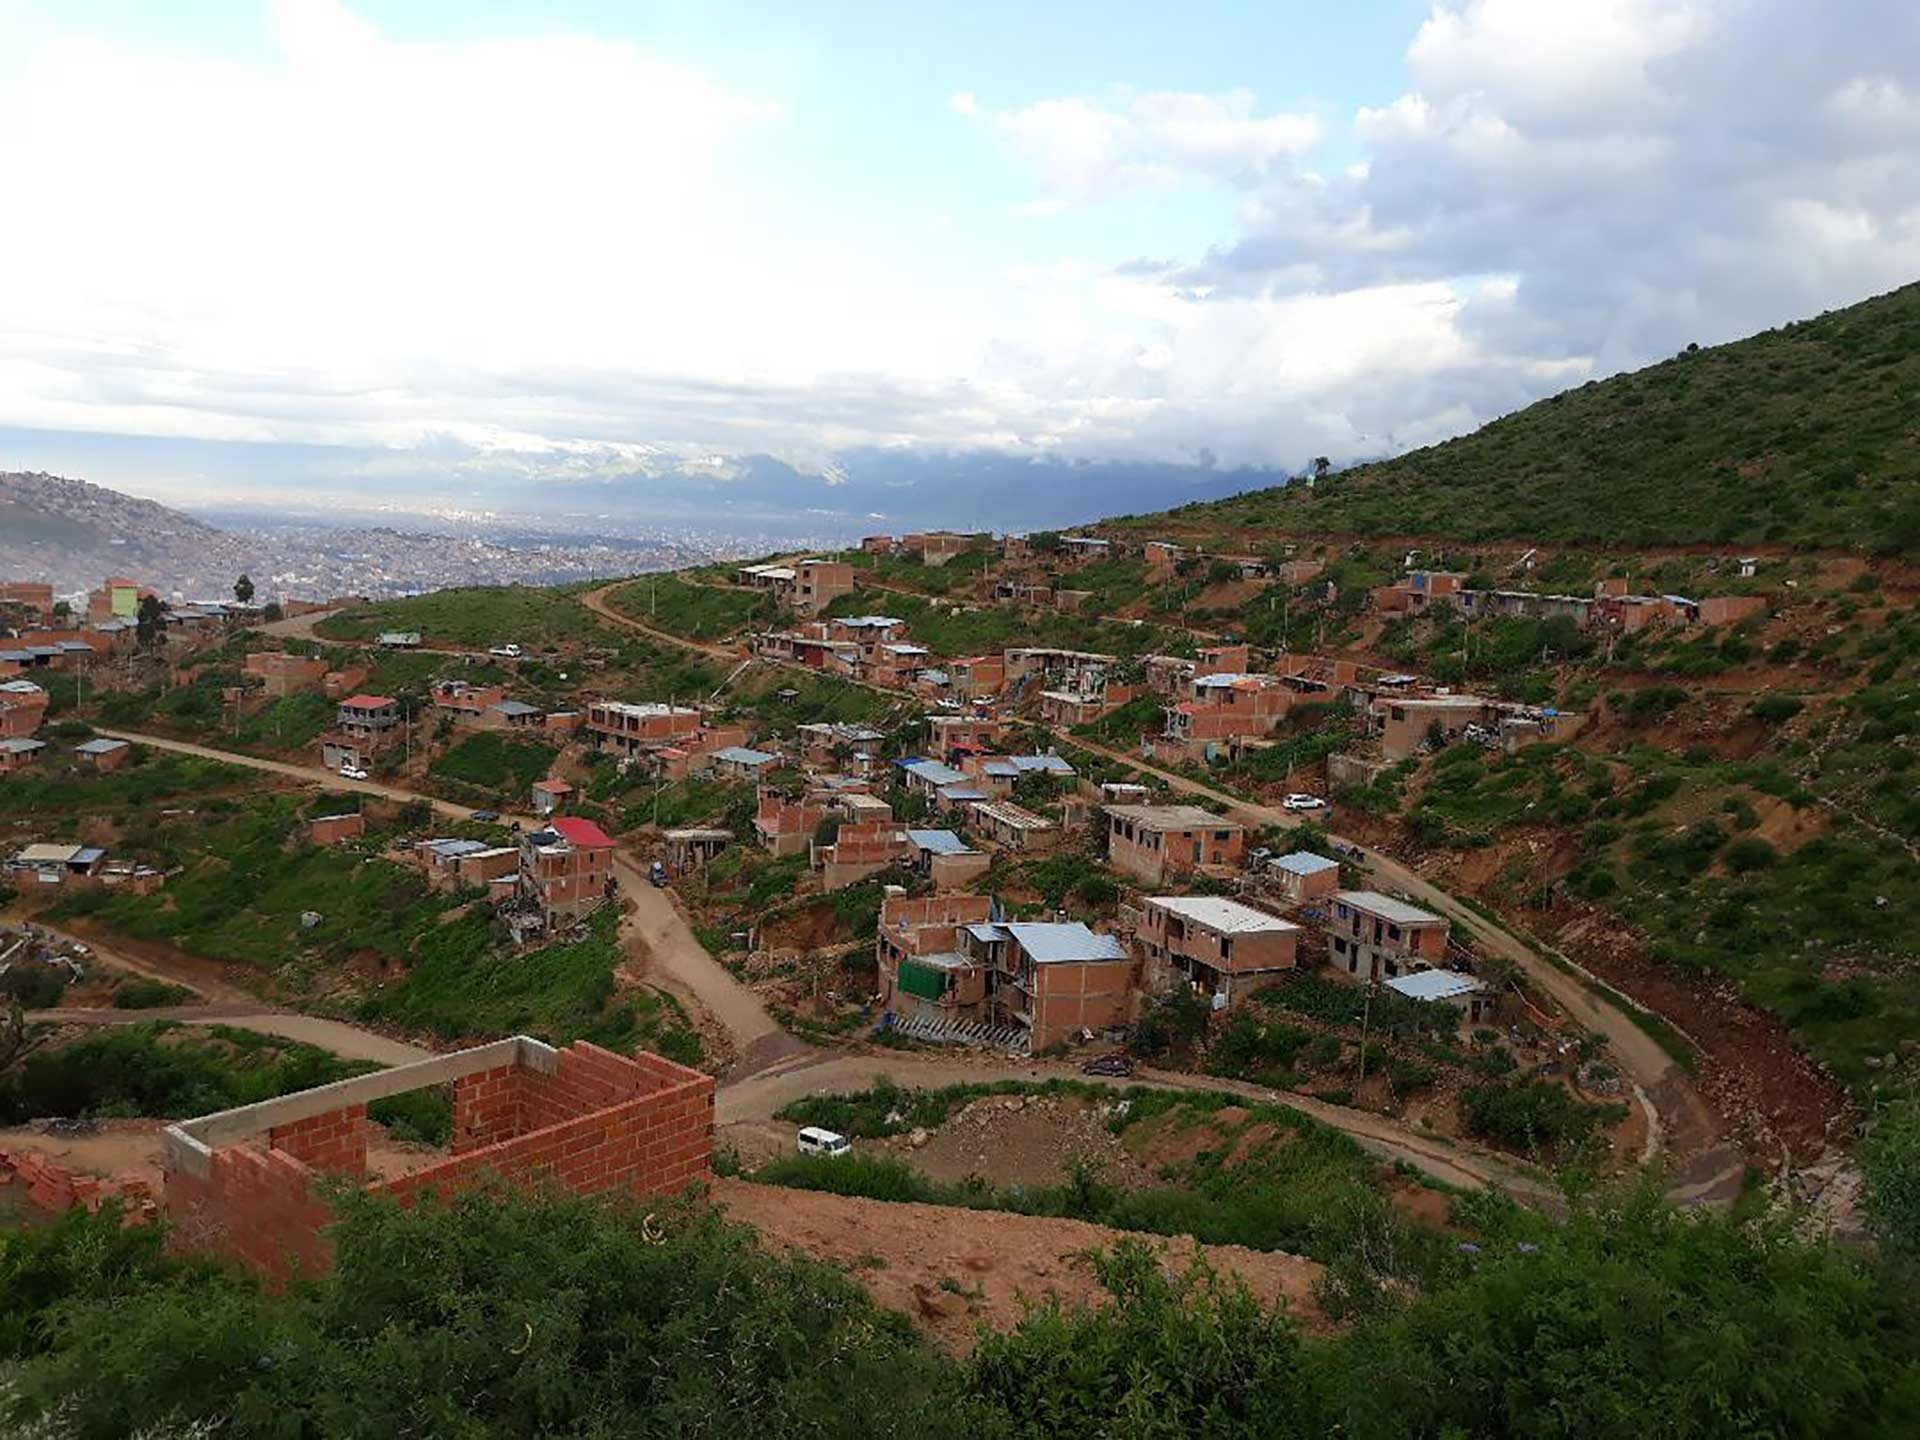 Cochabamba, Bolivia:  Confronting speculators and financing community infrastructure